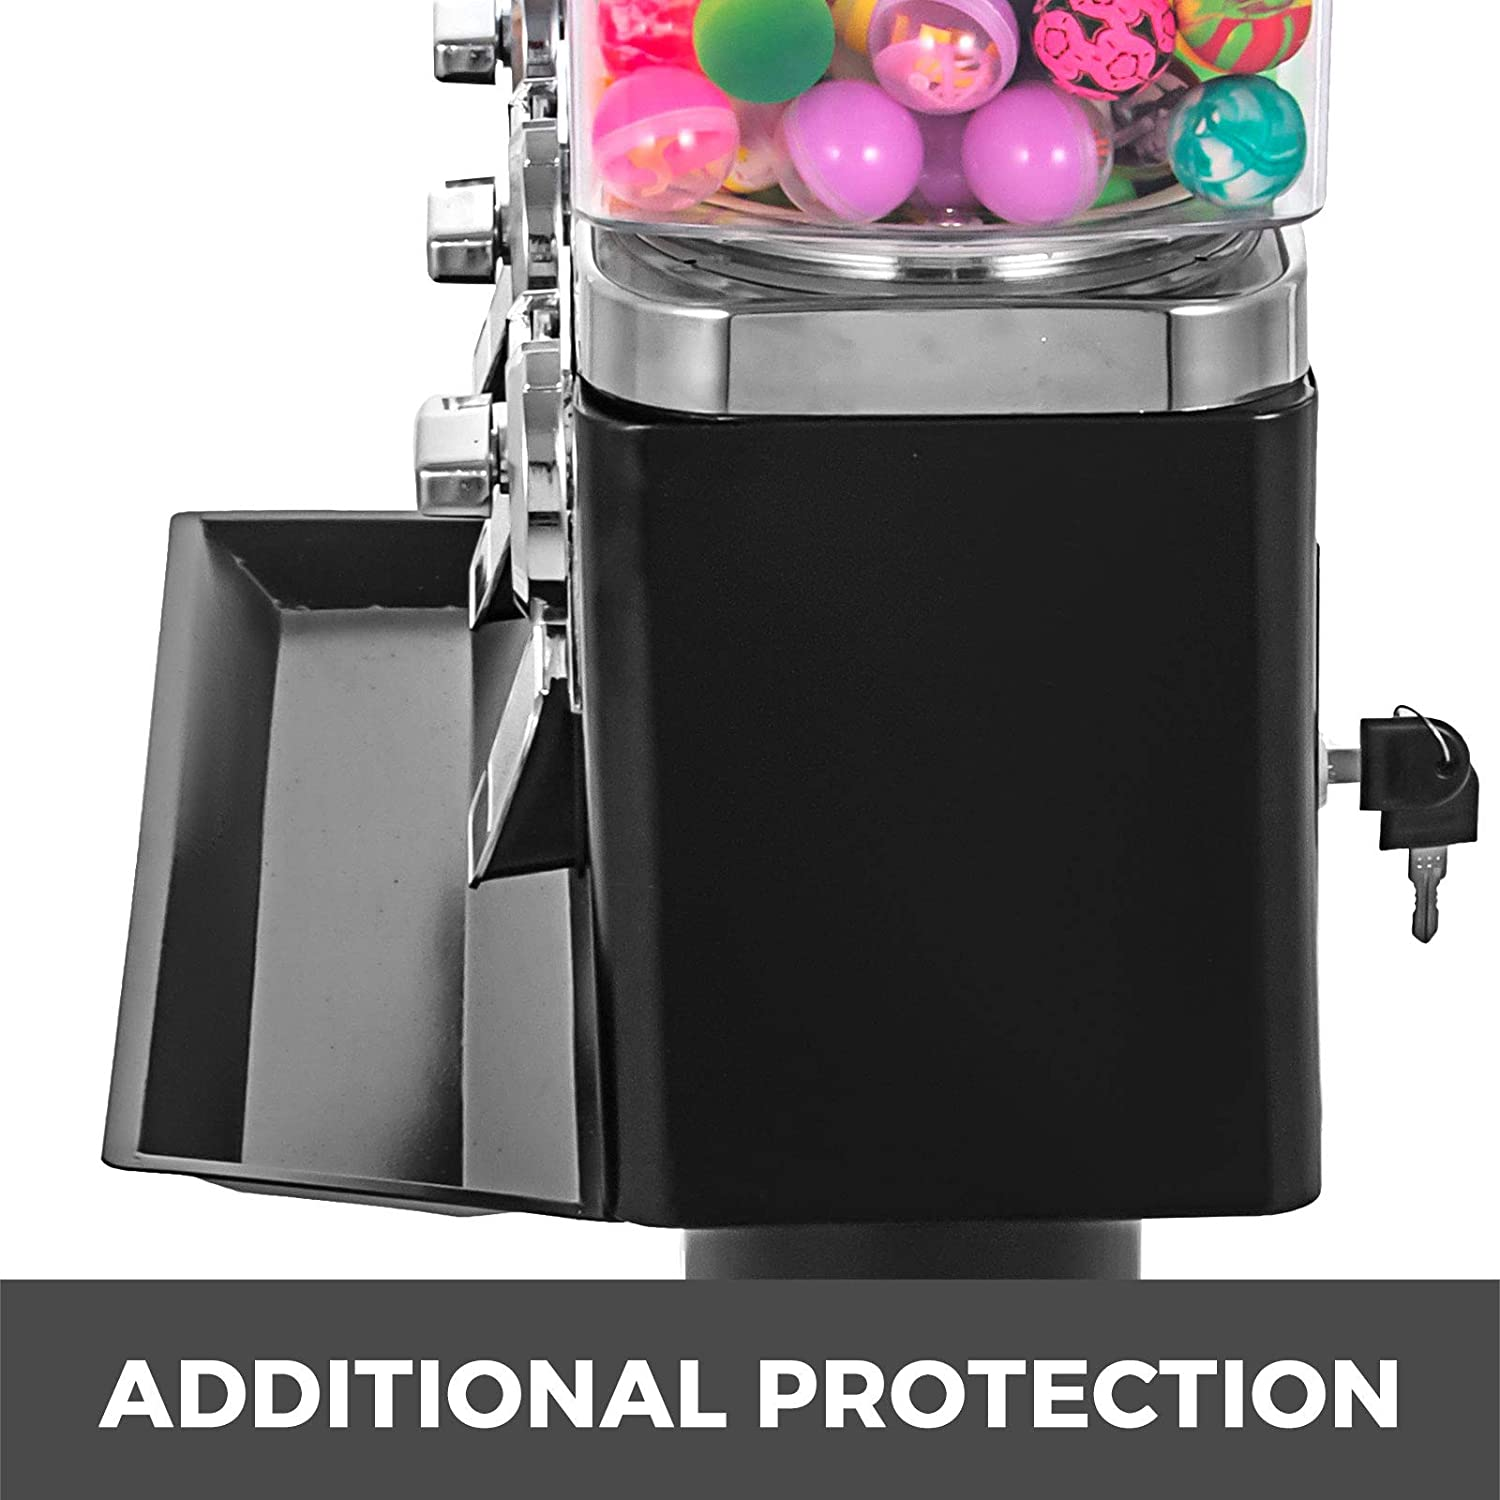 Gumball Machine Triple with Metal Stand Toys Capsules Candy Vending Machines on Stand Red Cylinder Bank 3 Gumballs Machines on Metal Stand